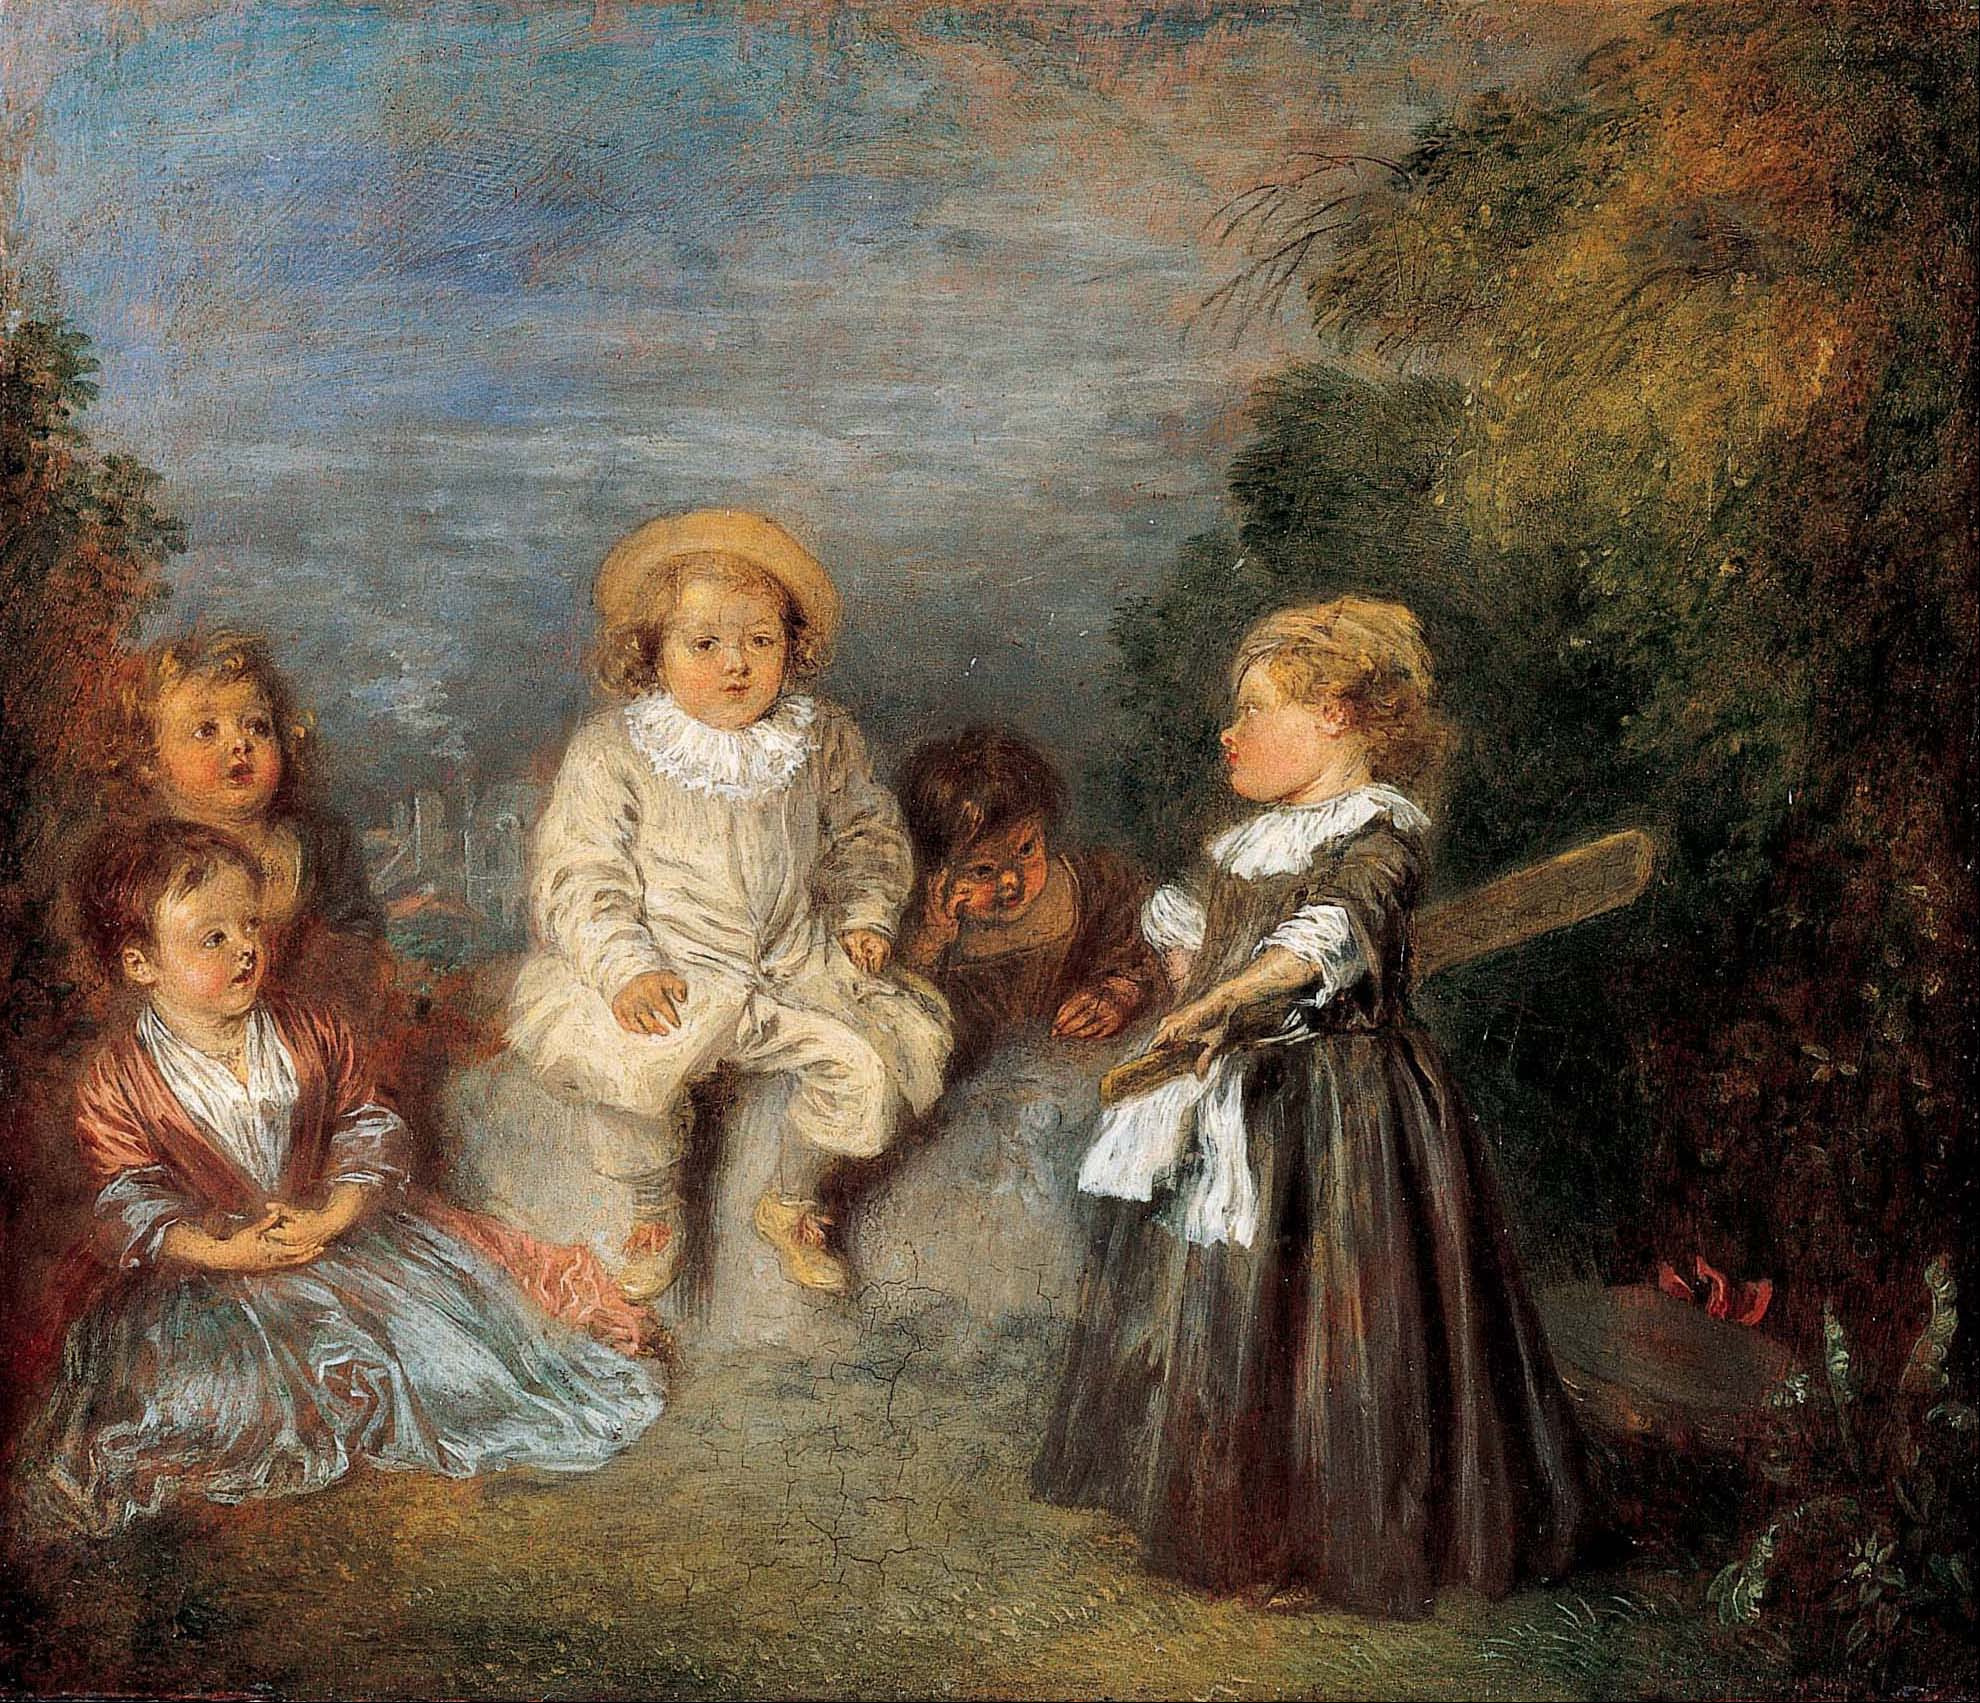 Jean Antoine Watteau - Page 2 Jean-Antoine_Watteau_-_Heureux_age!_Age_d%27or_%28Happy_Age!_Golden_Age%29_-_Google_Art_Project